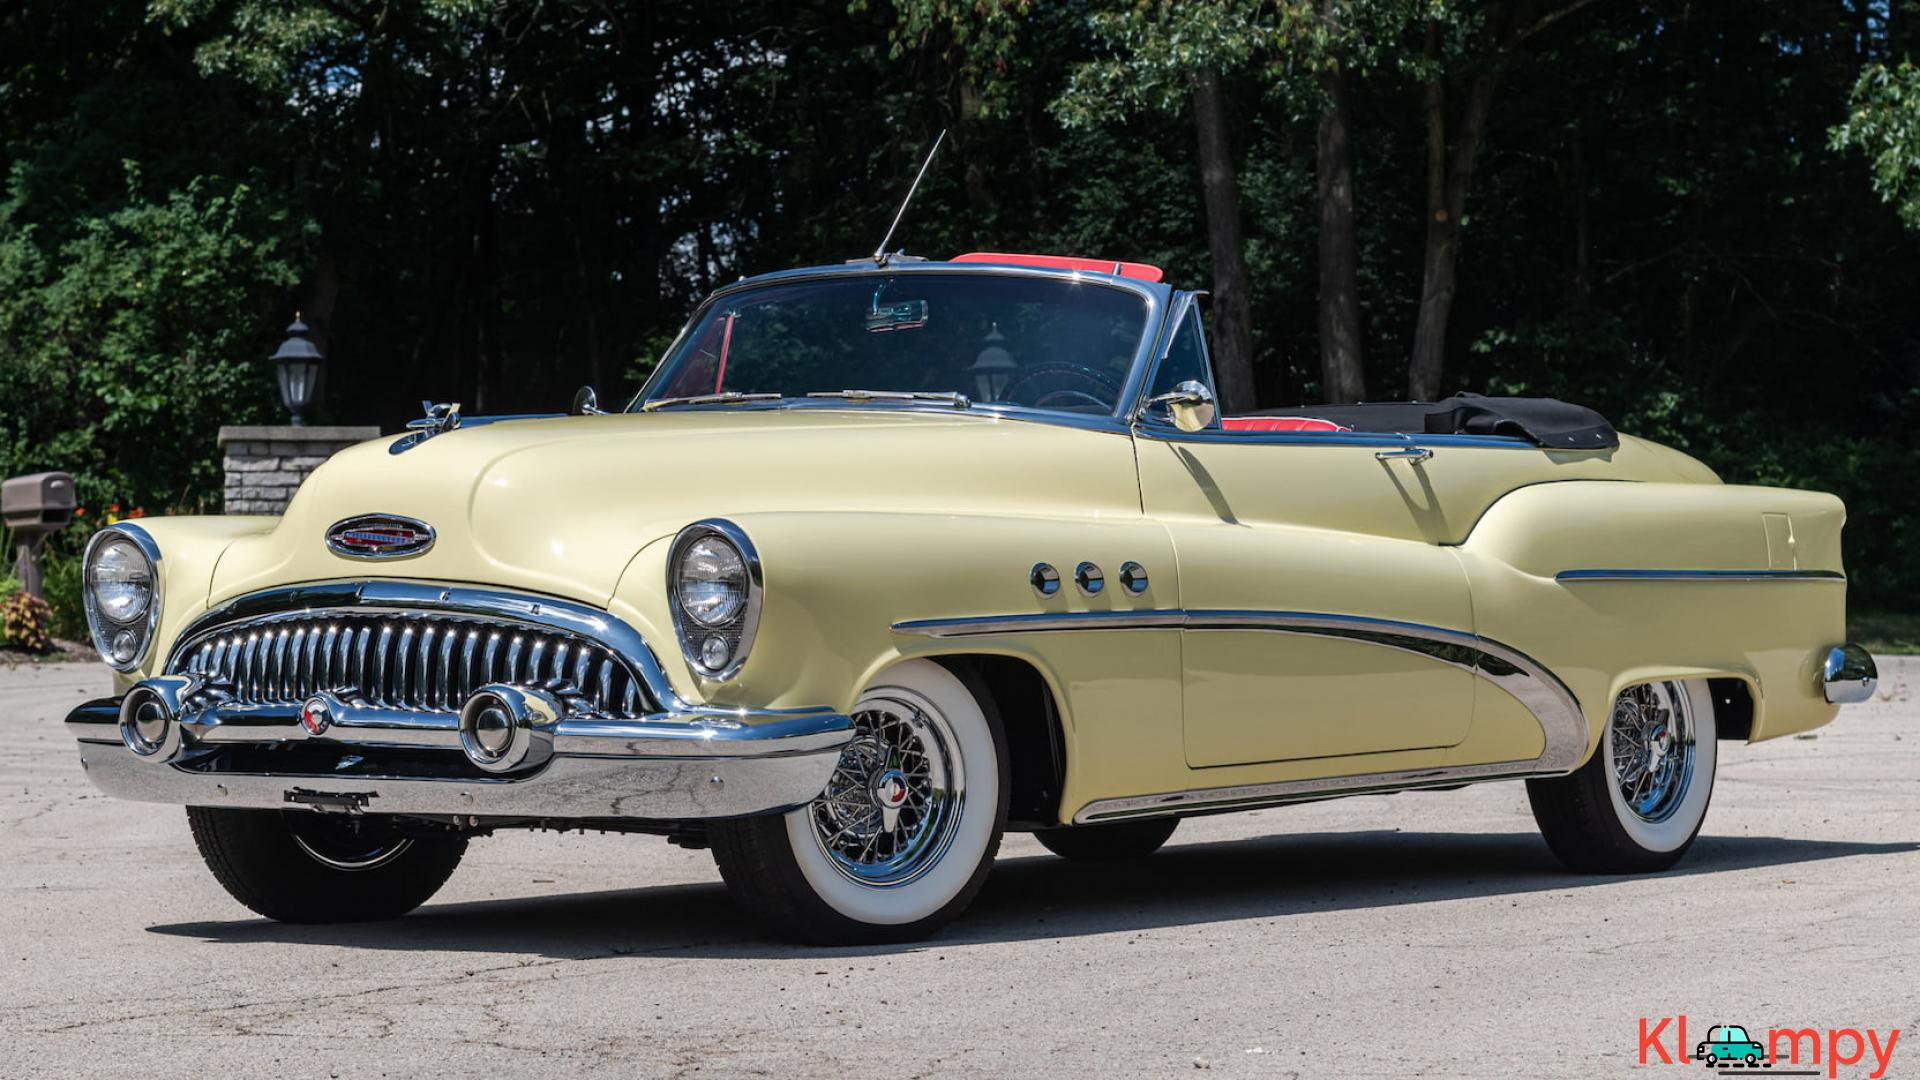 1953 Buick Super Eight Convertible - 2/15